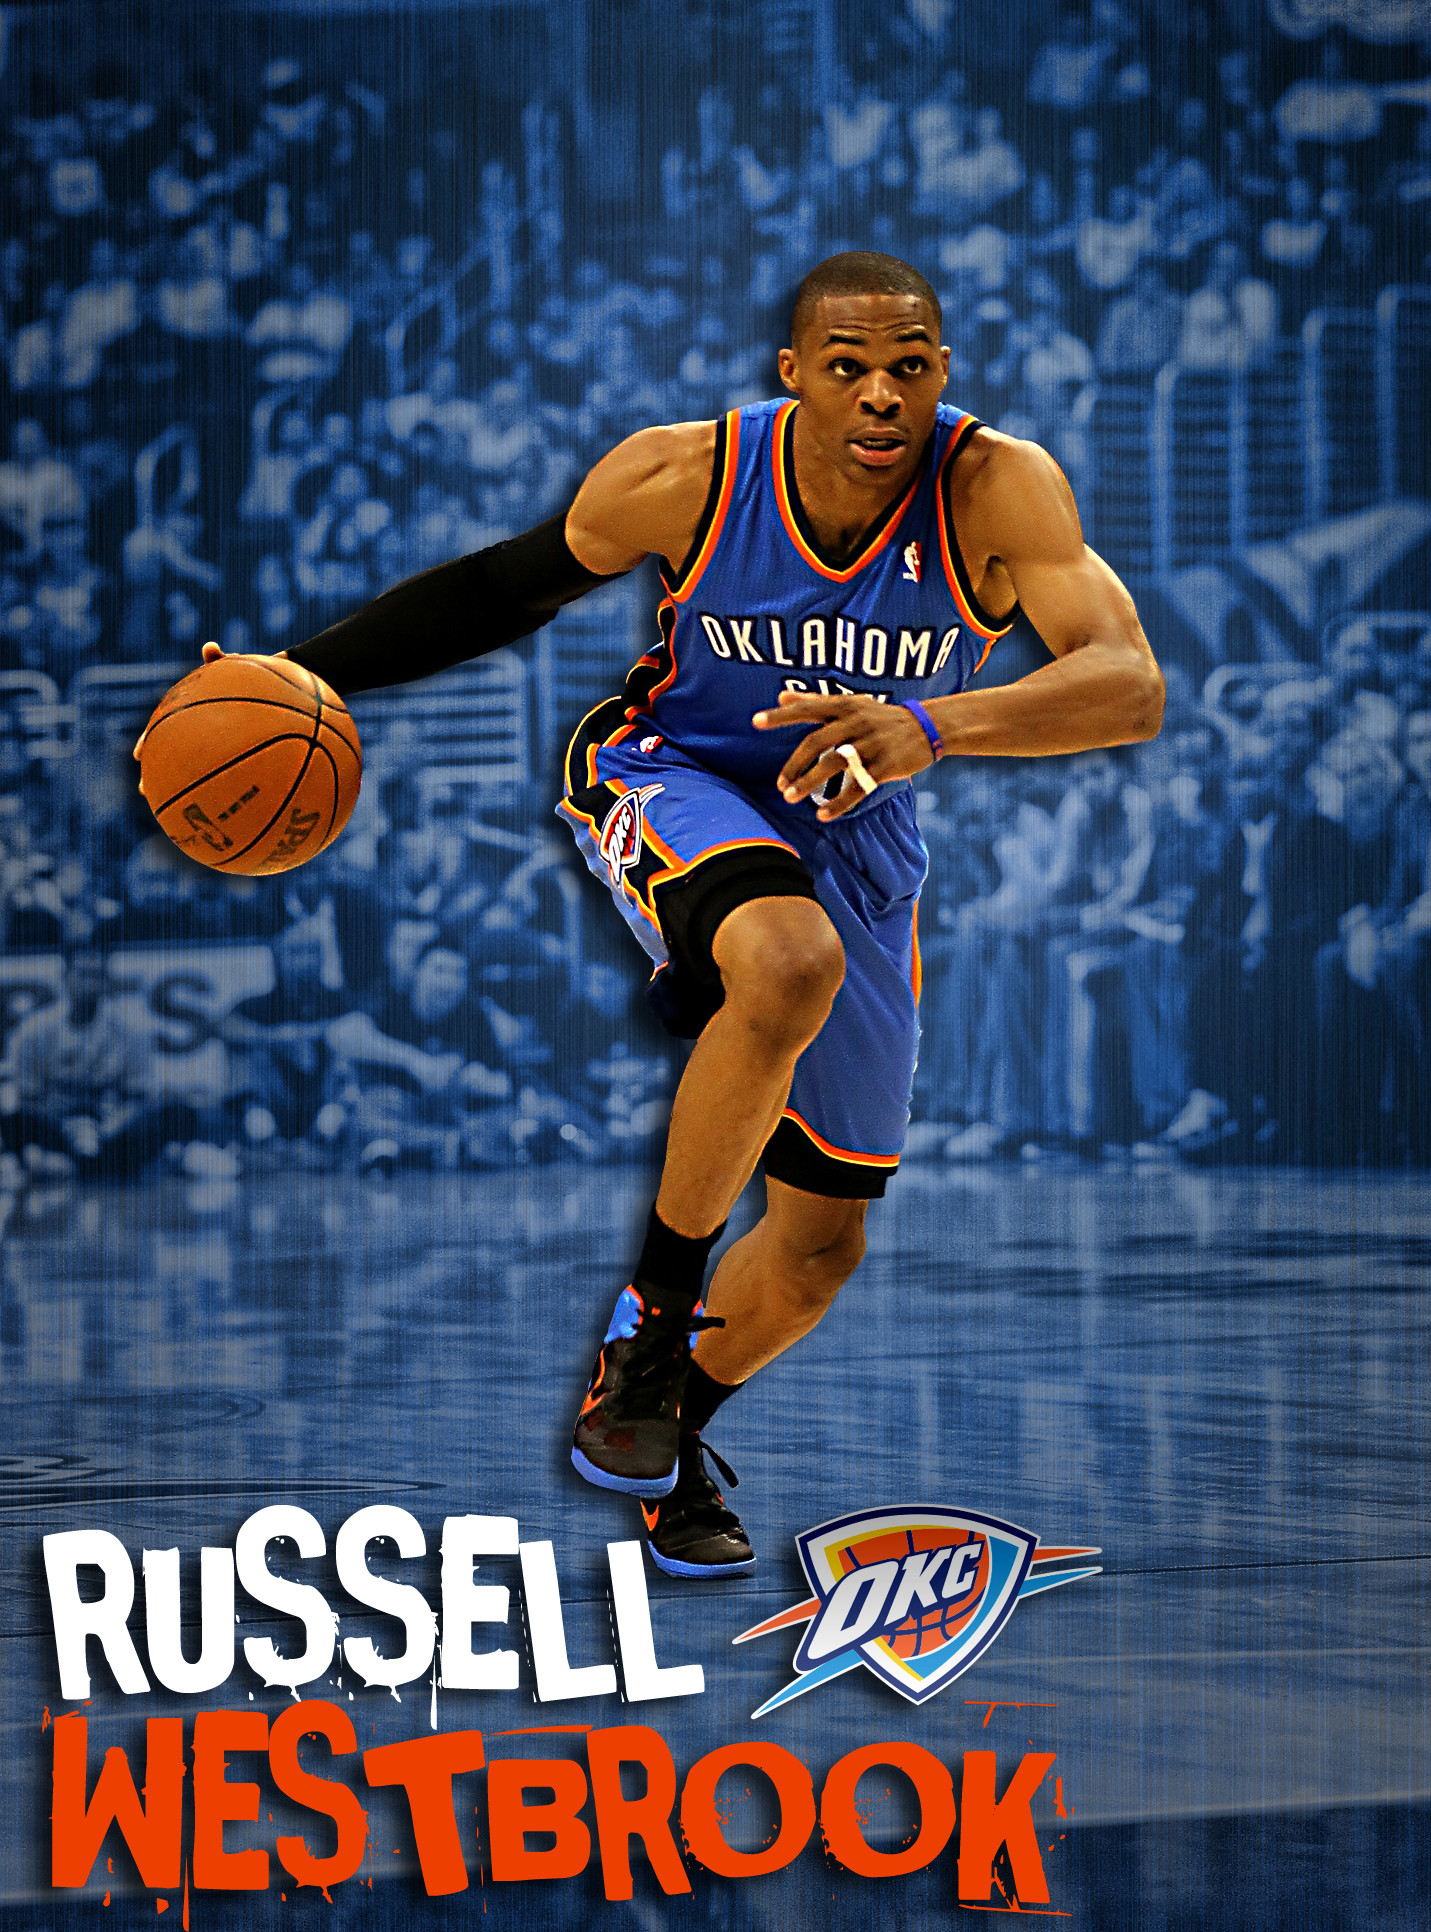 Nba Players Iphone Wallpaper Russell Westbrook Wallpaper Iphone 68 Images